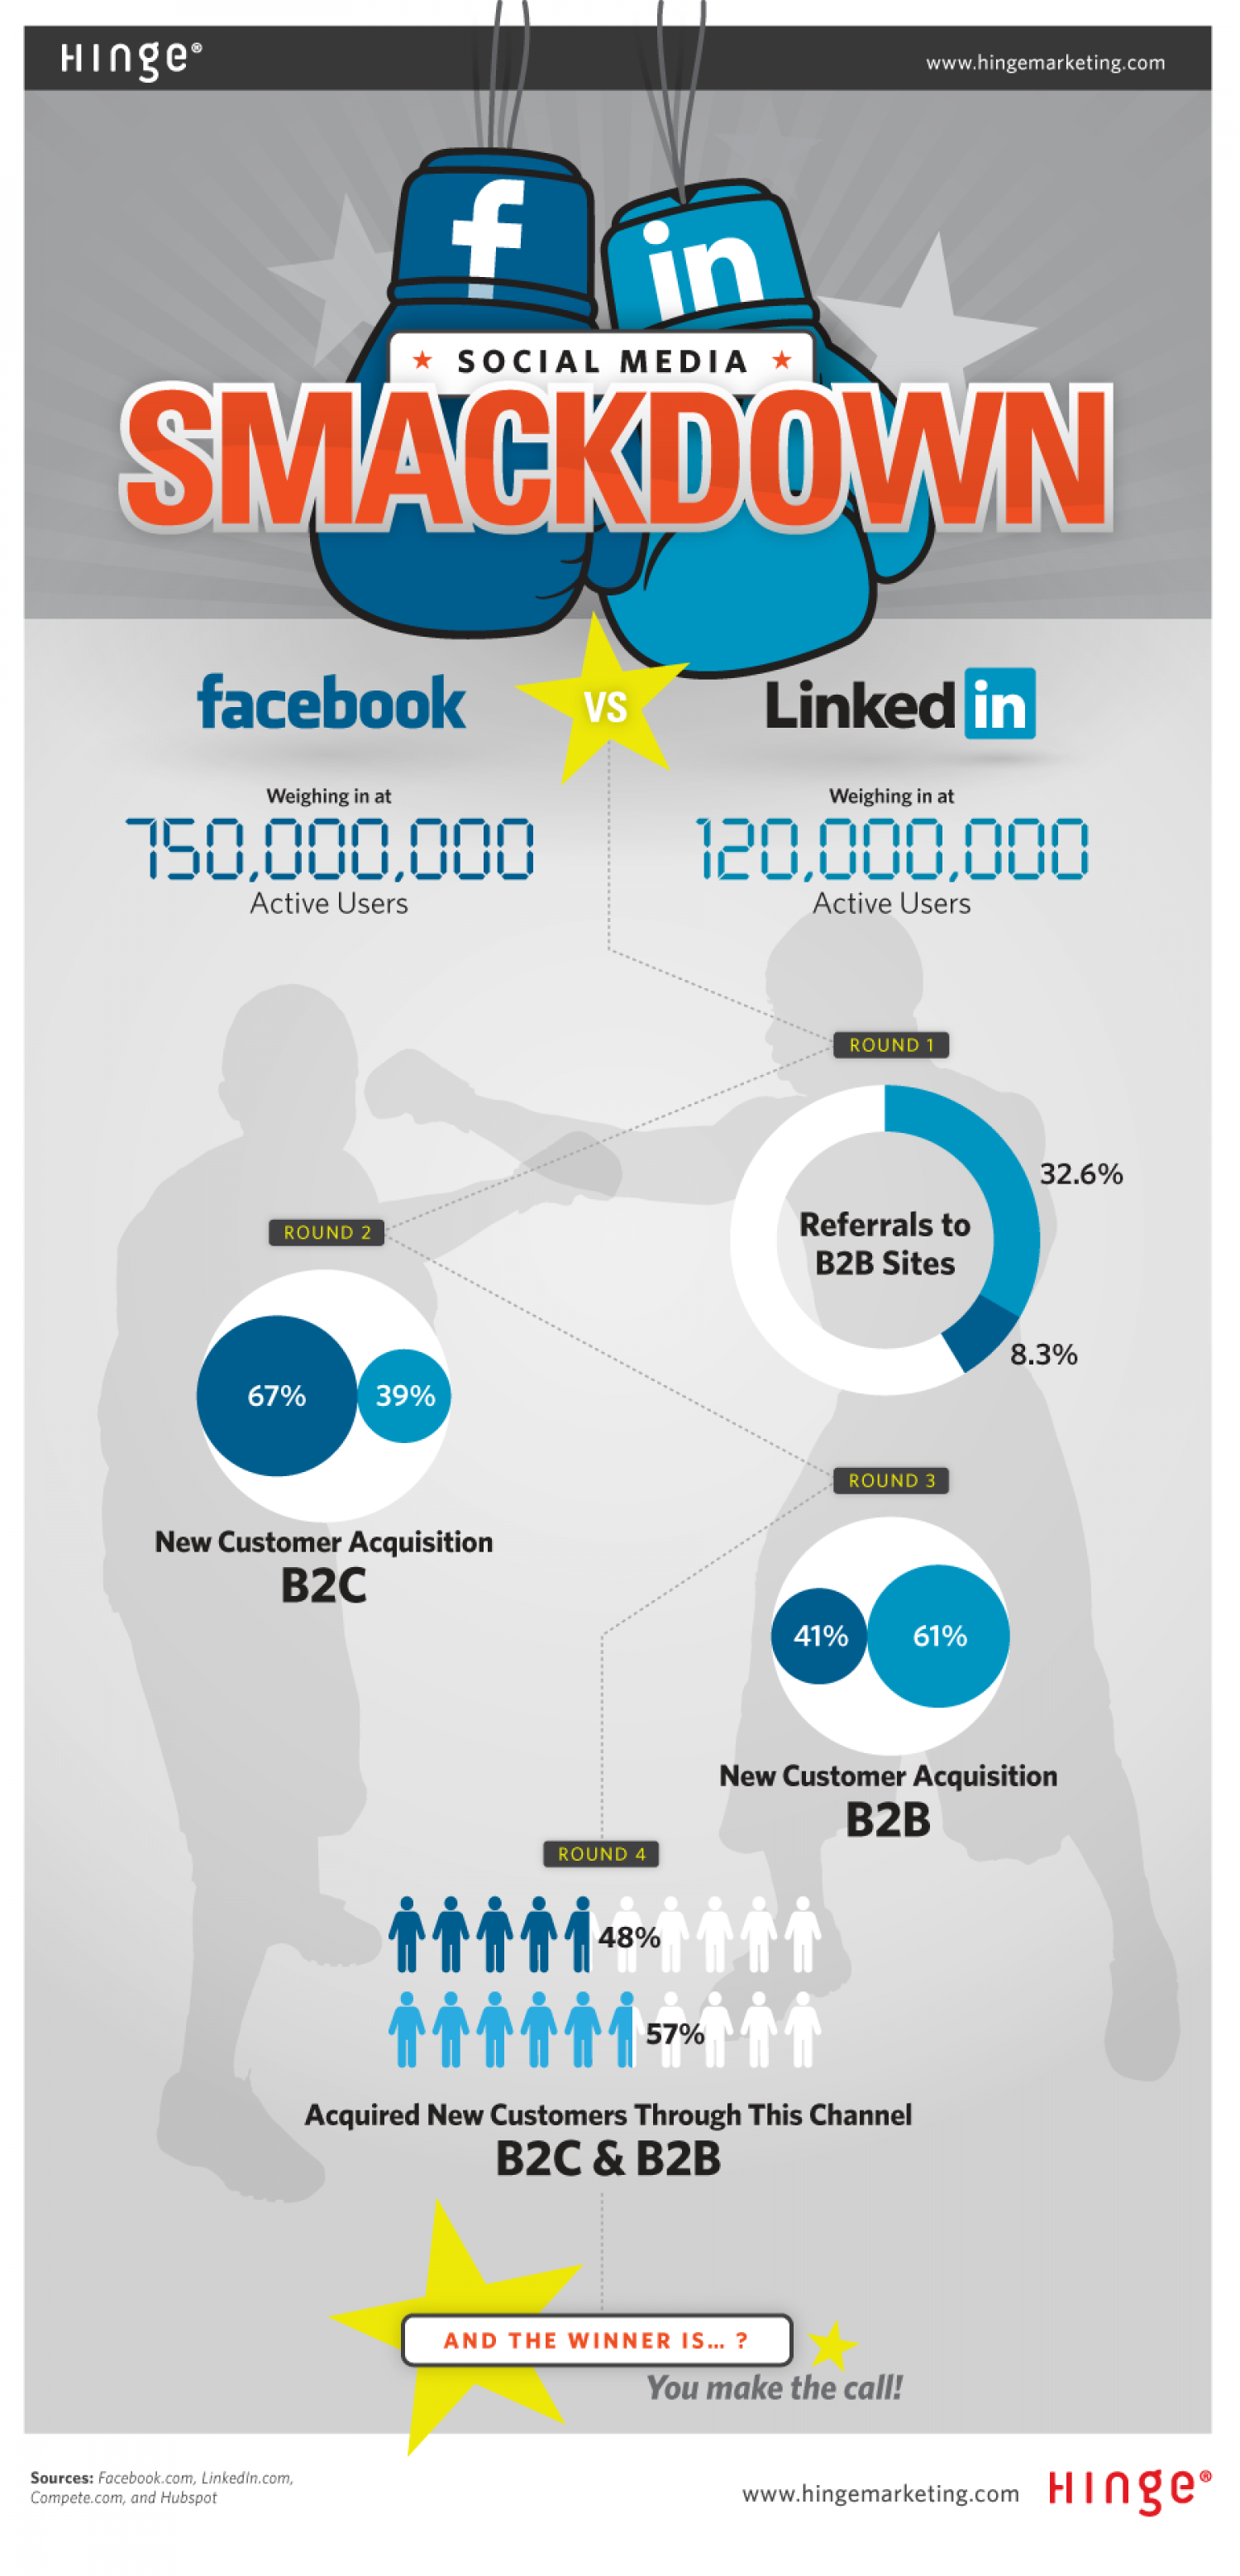 Social Media Smackdown Infographic